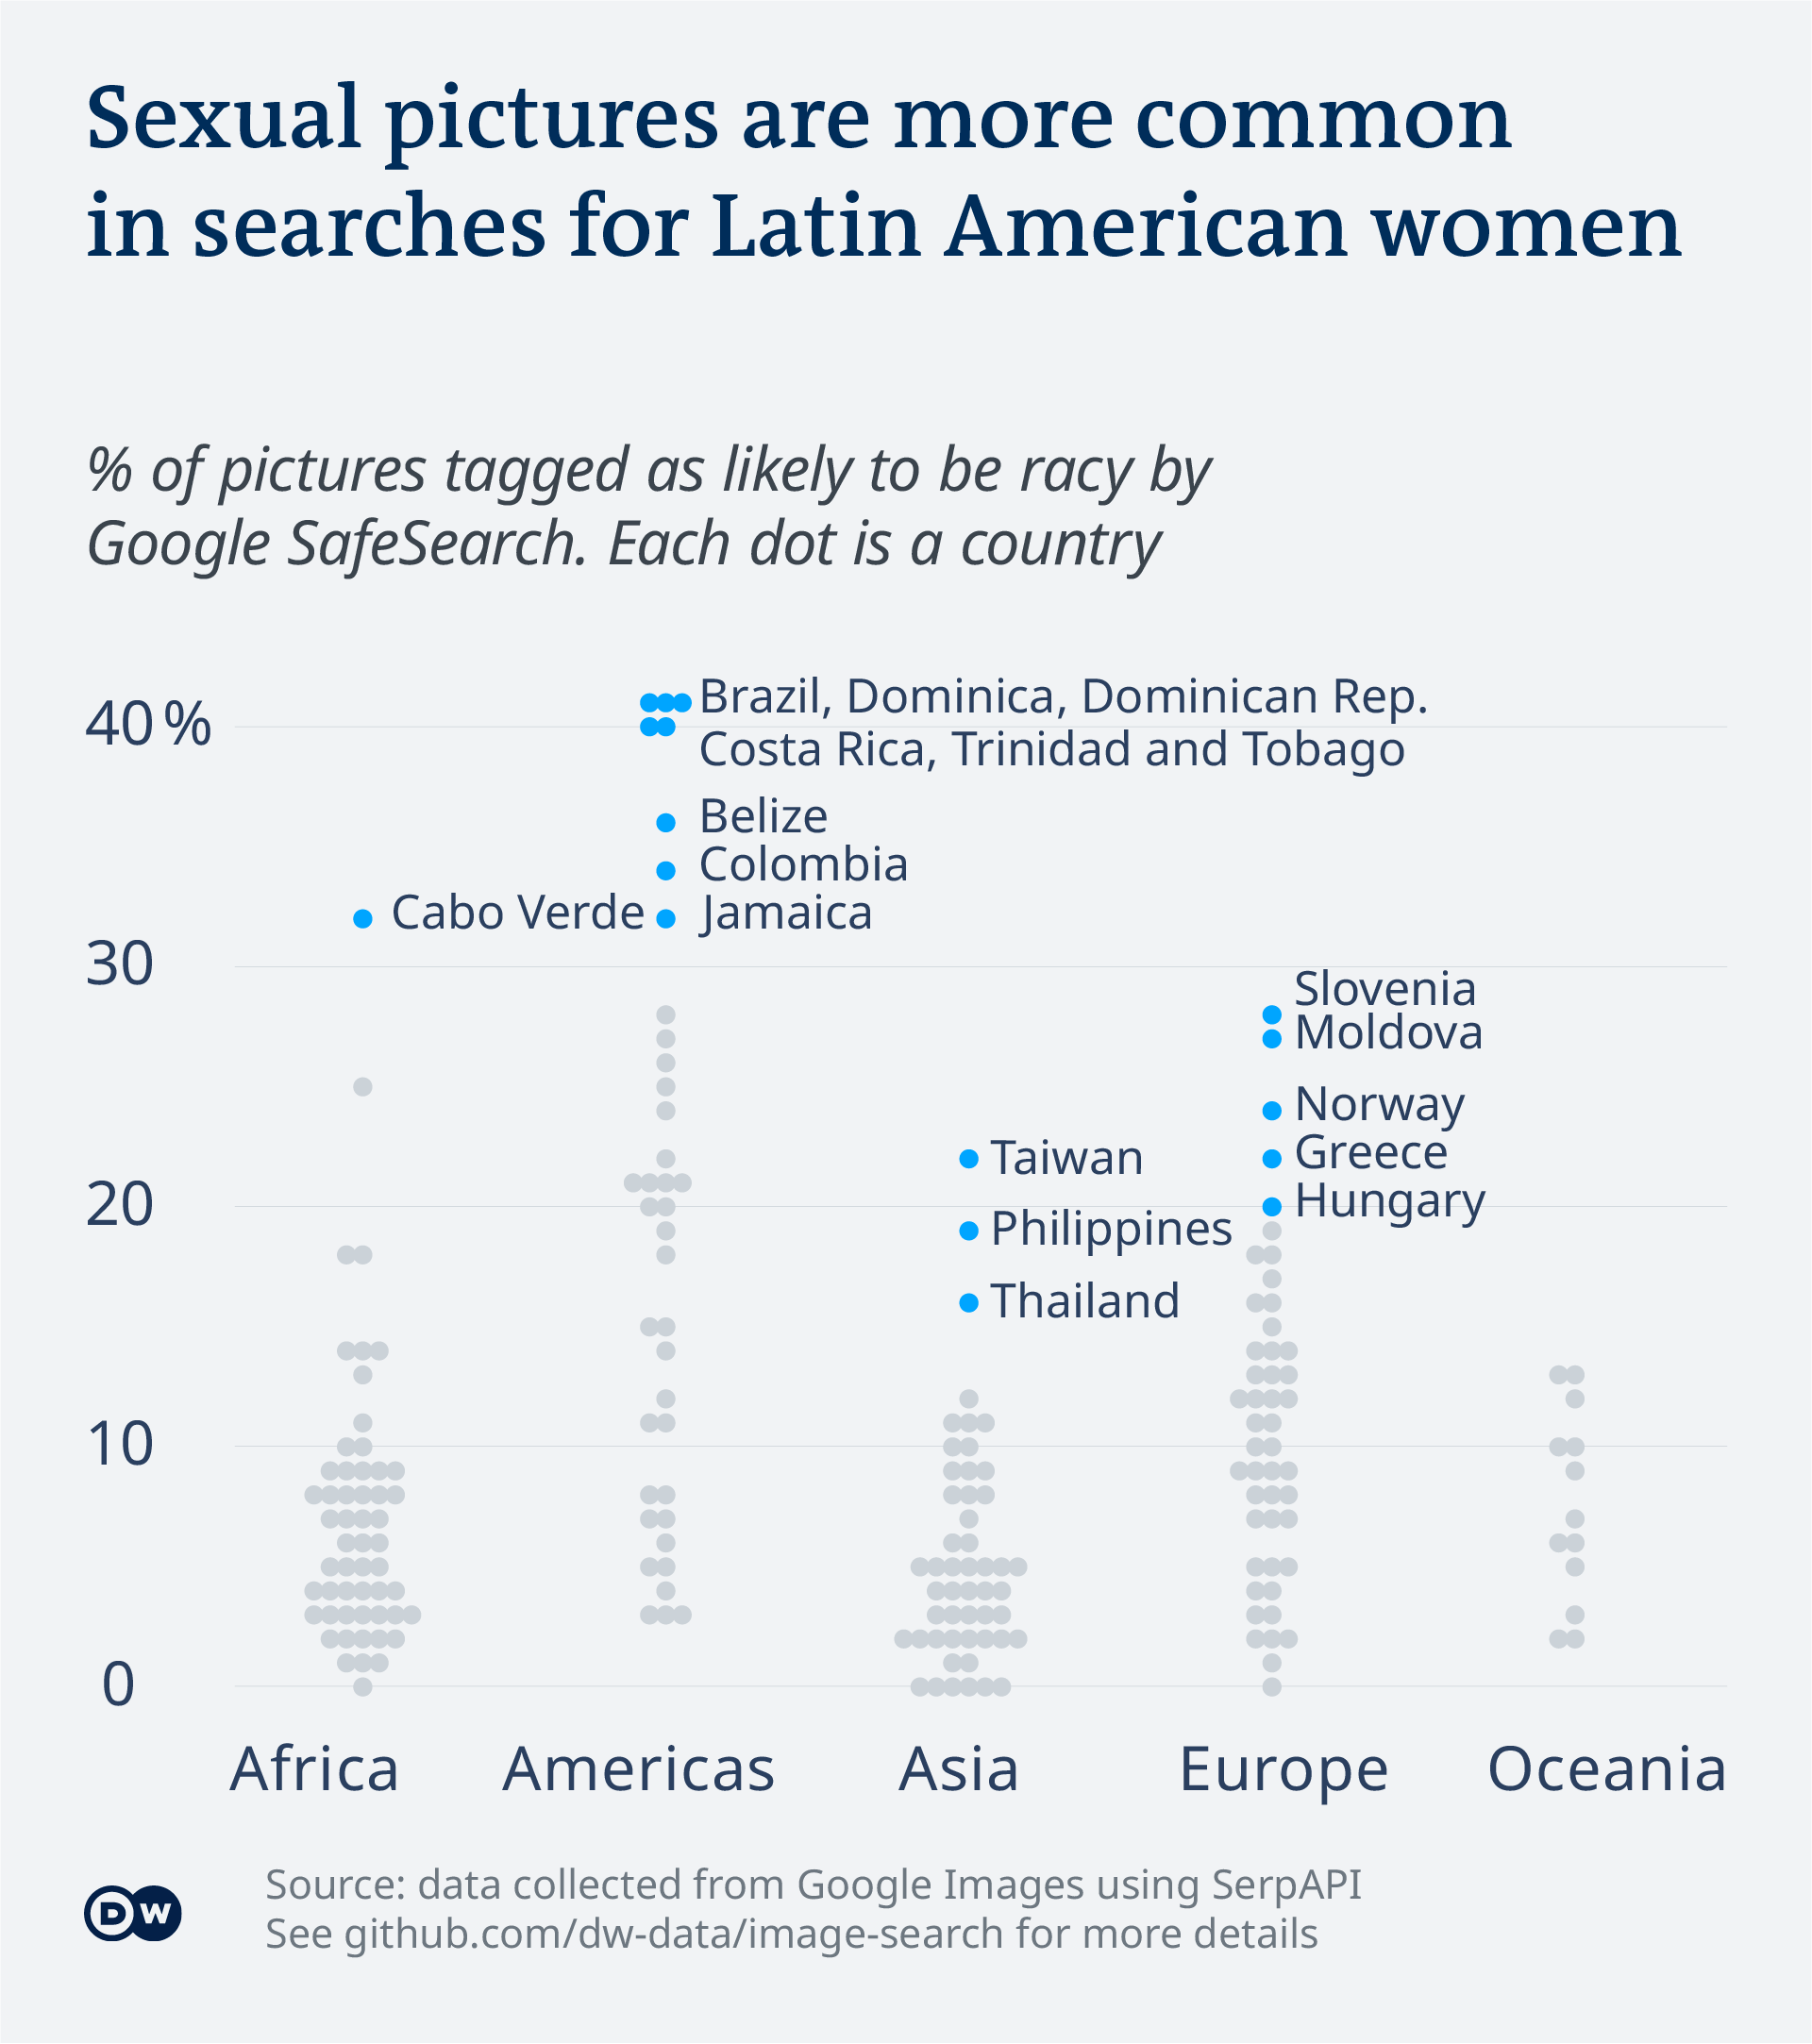 Data visualization - Google image search - Rate of racy pictures in different regions